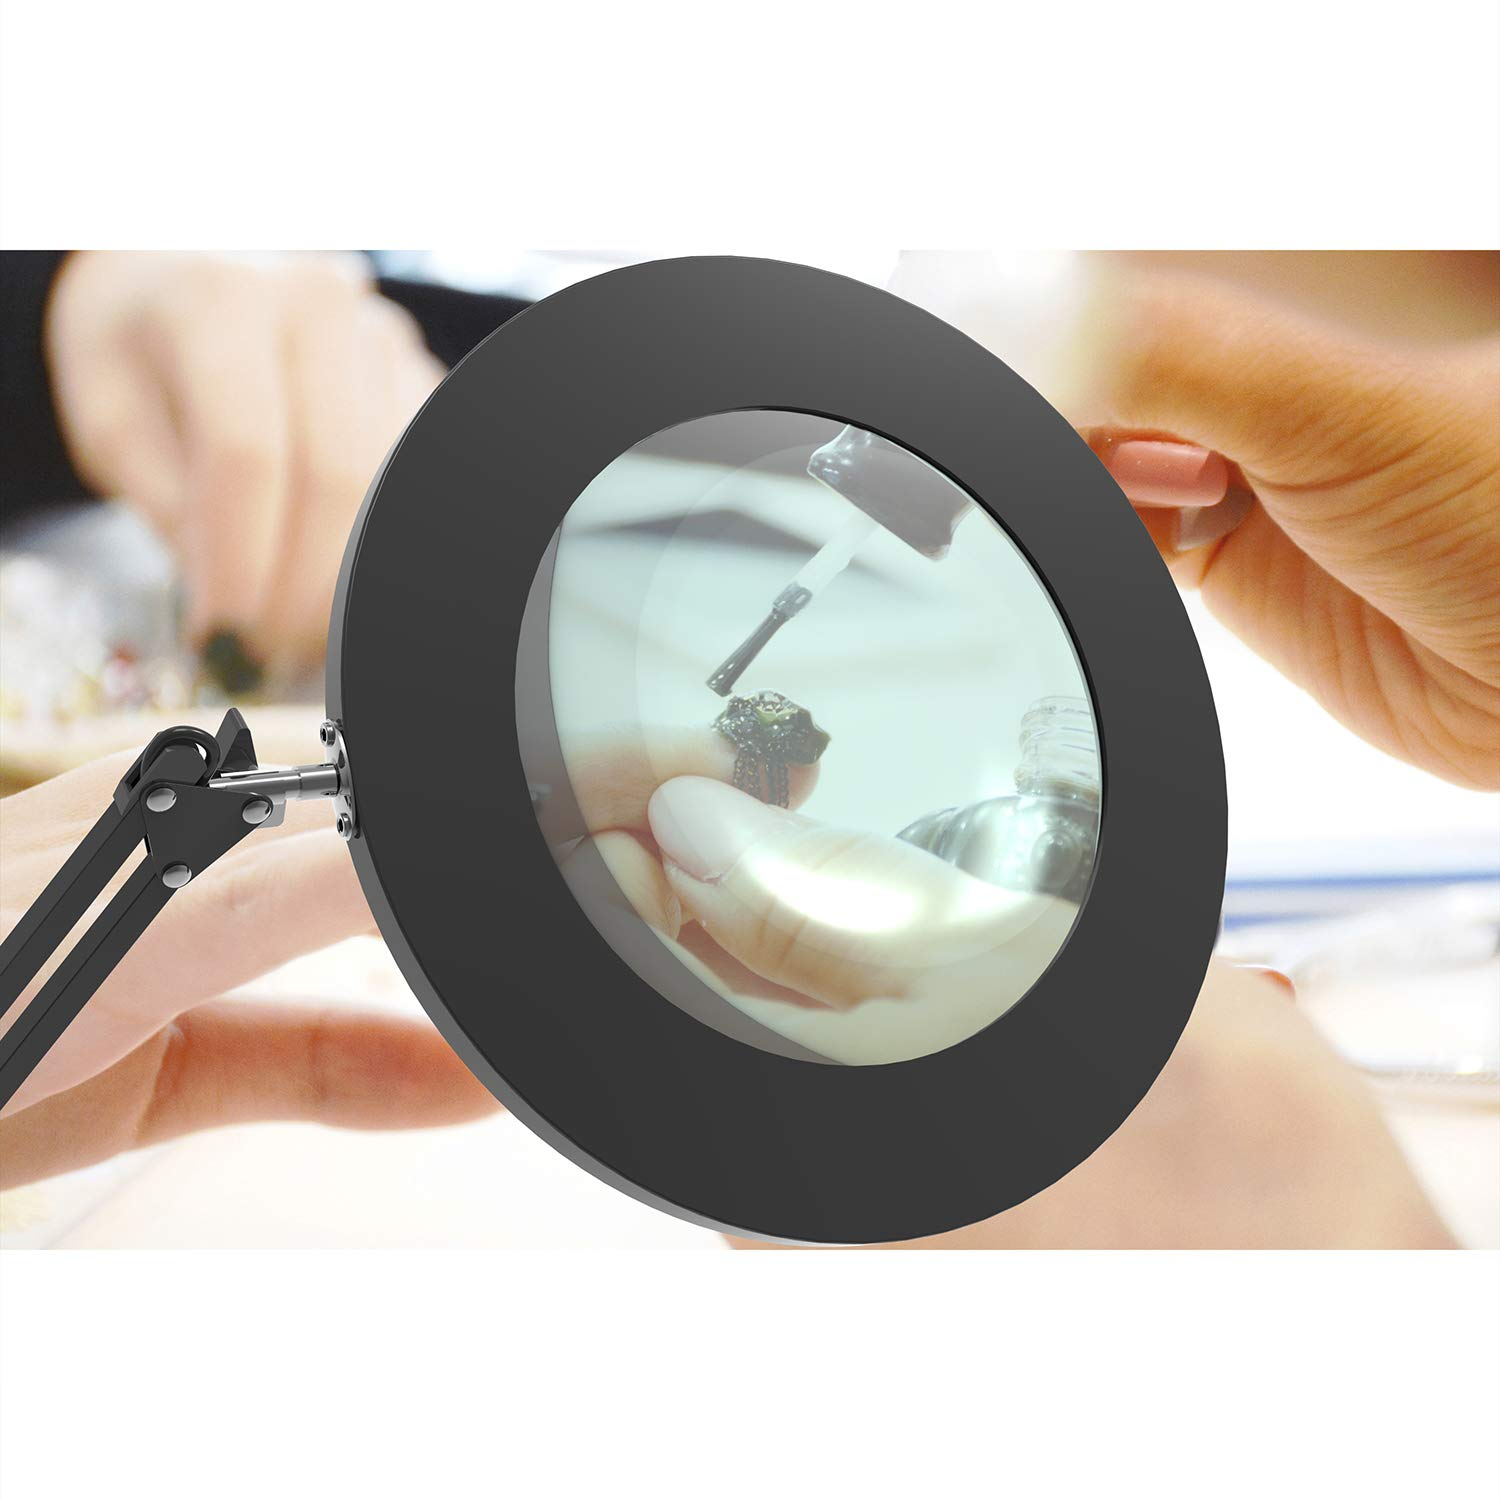 YOUKOYI 5X LED Magnifying Lamp Metal Swing Arm Magnifier Light 3 Color Modes 4.1 Diameter Glass 7W Eye-Caring Desk Lamp for Reading//Office//Work White